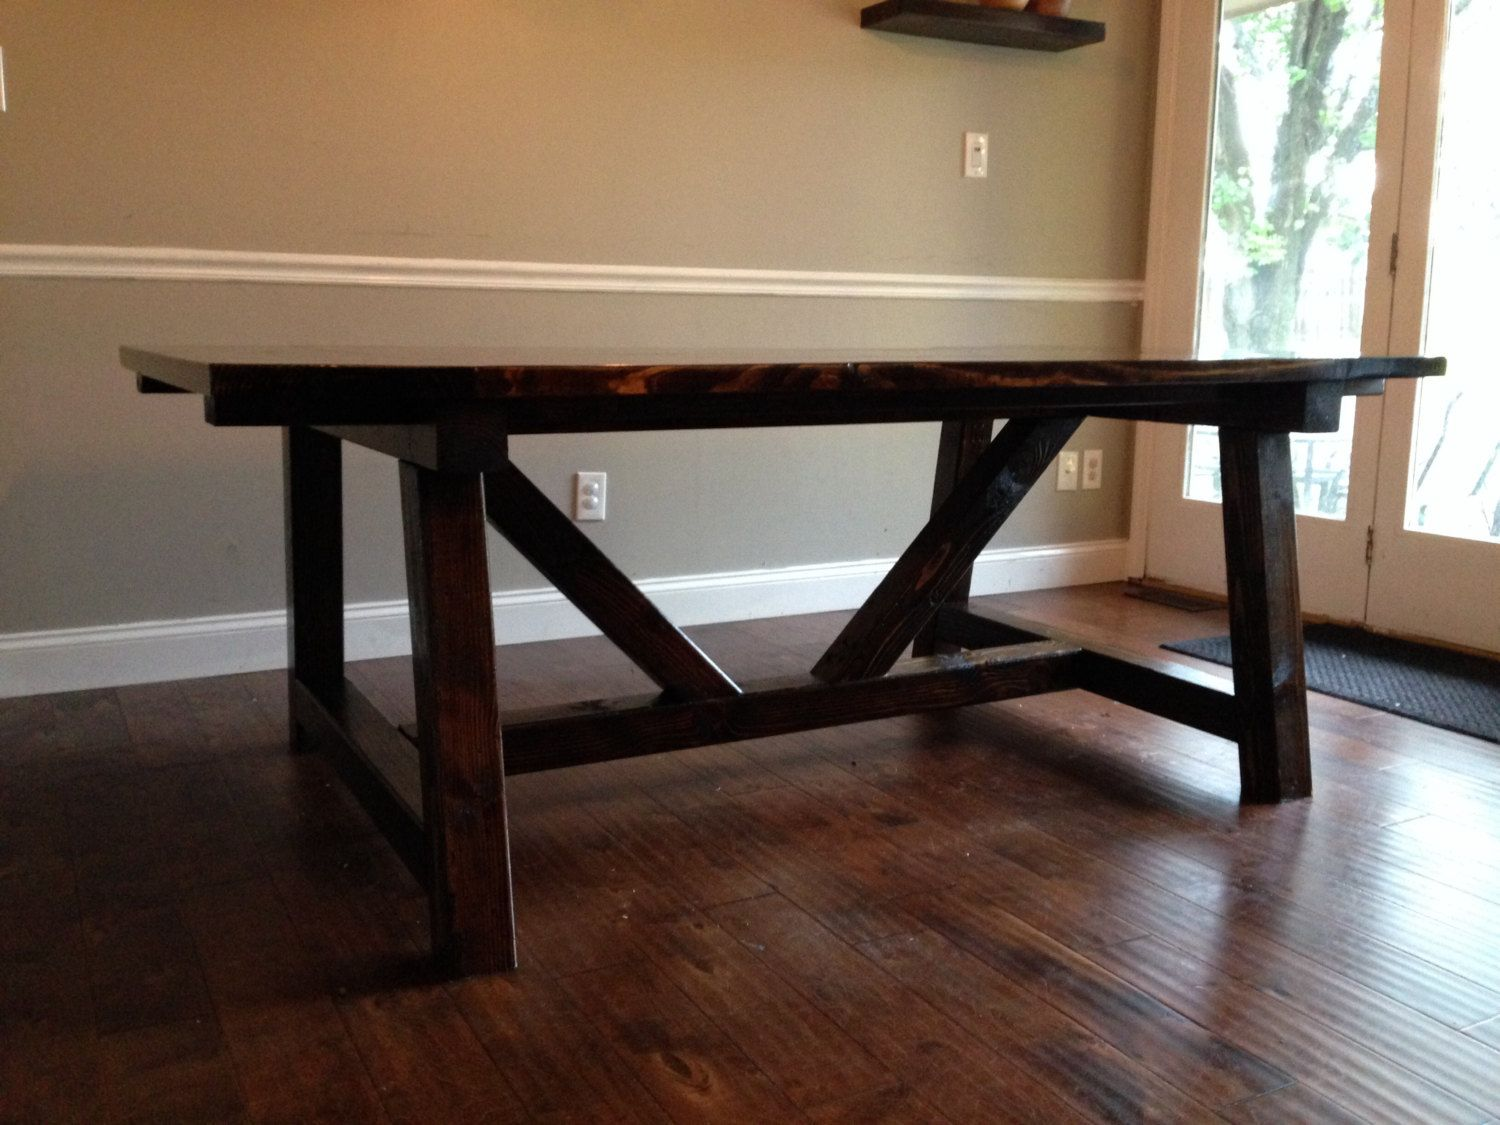 Custom Handmade Farmhouse Table By HJCCustomDesigns On Etsy, $1,800.00